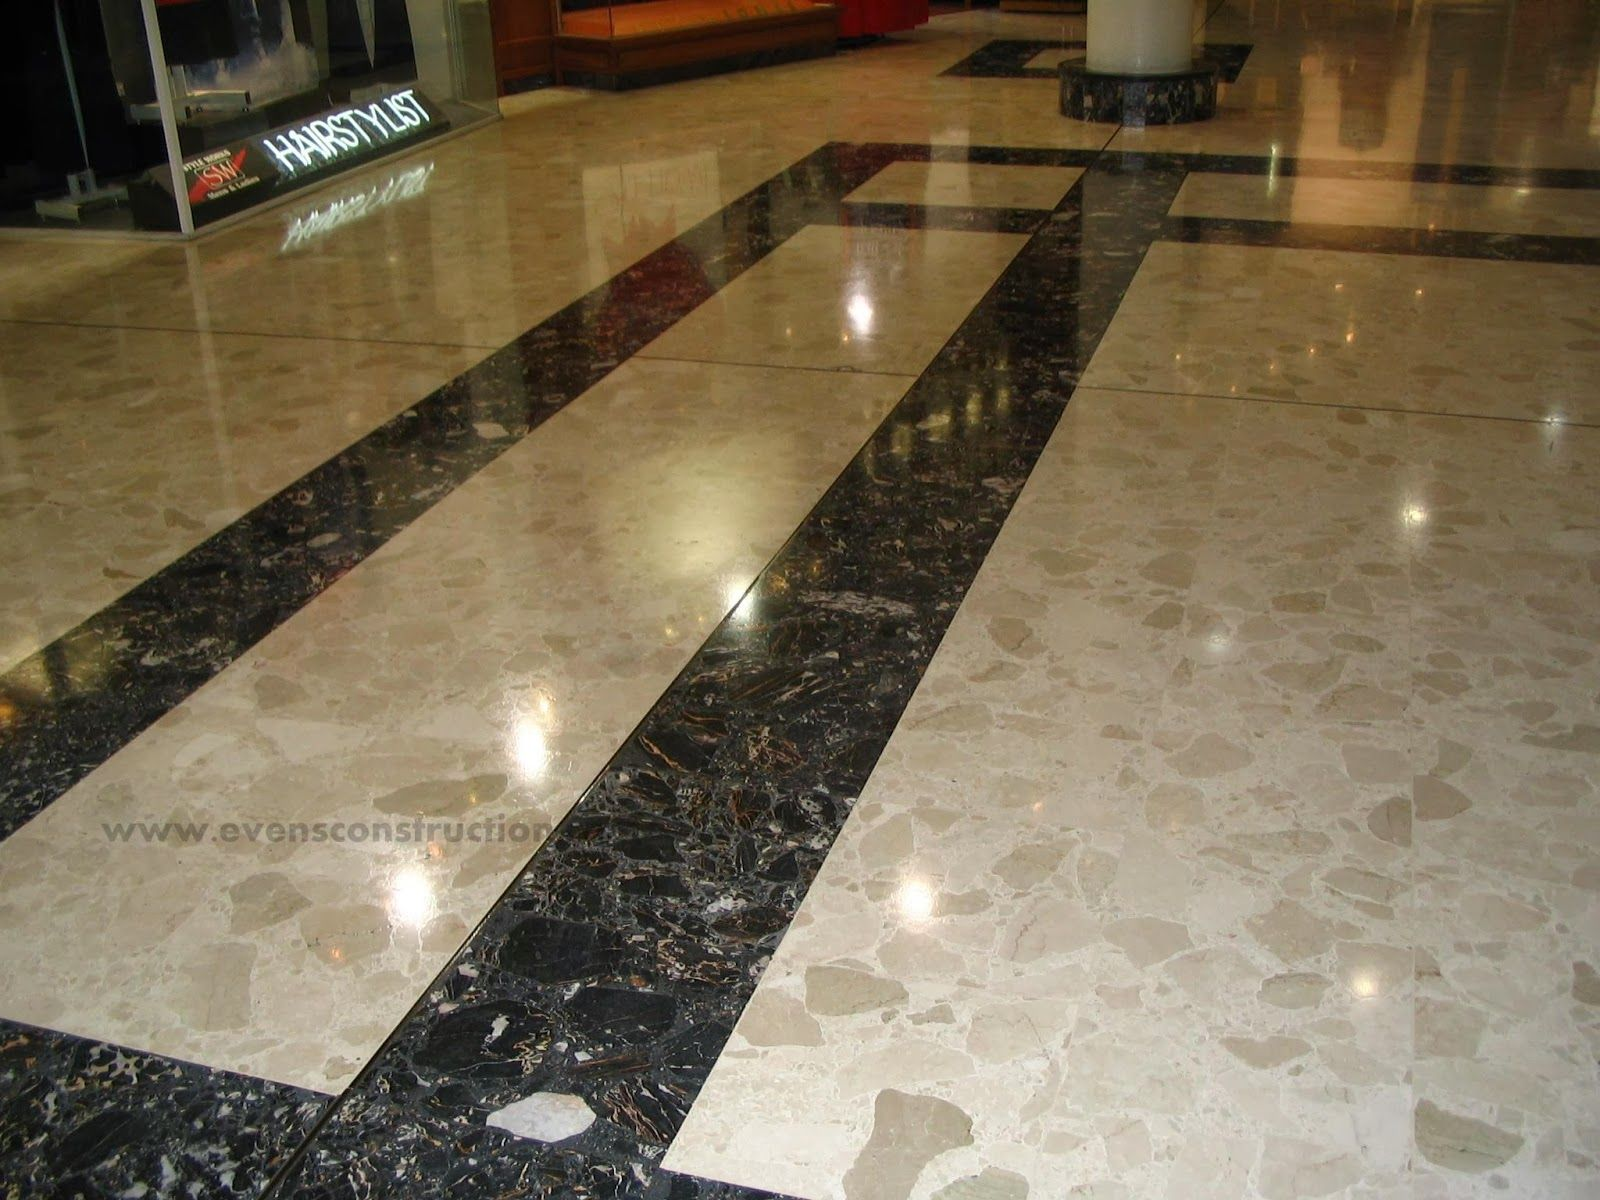 marble floor   Yahoo Image Search Results. marble floor   Yahoo Image Search Results   marble floor